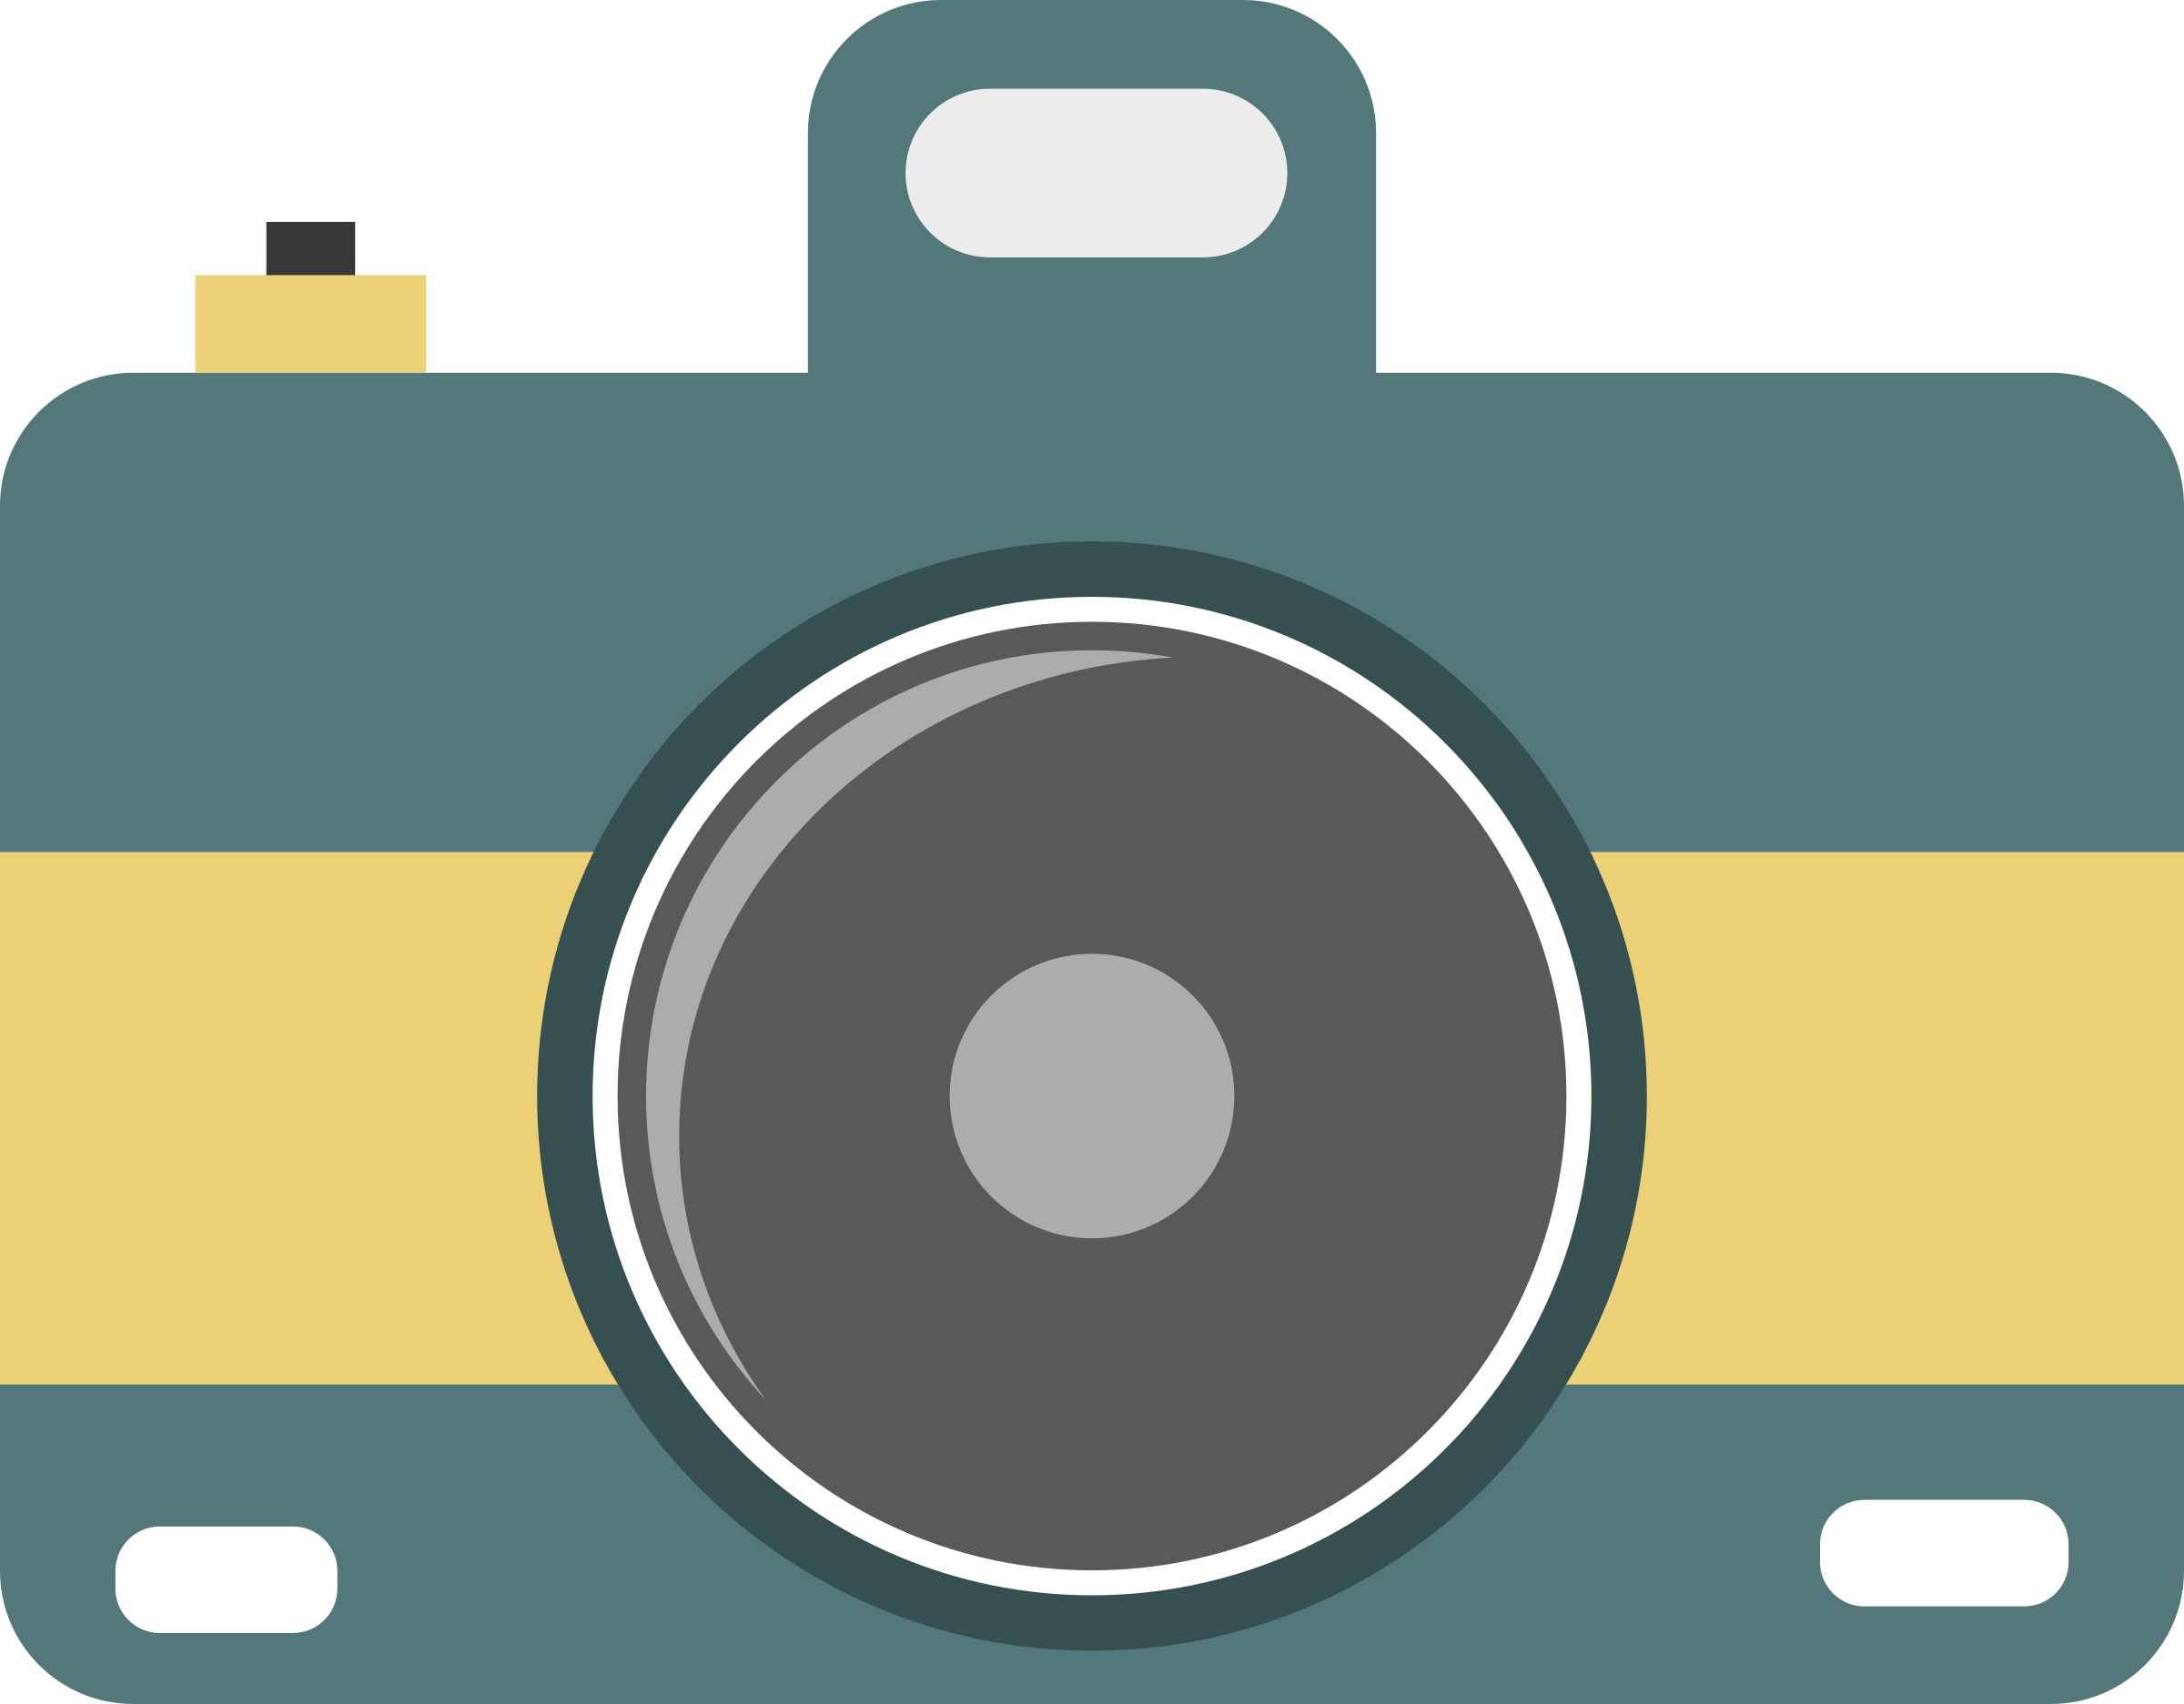 Photography clipart simple camera Camera Clipart camera Flat Flat